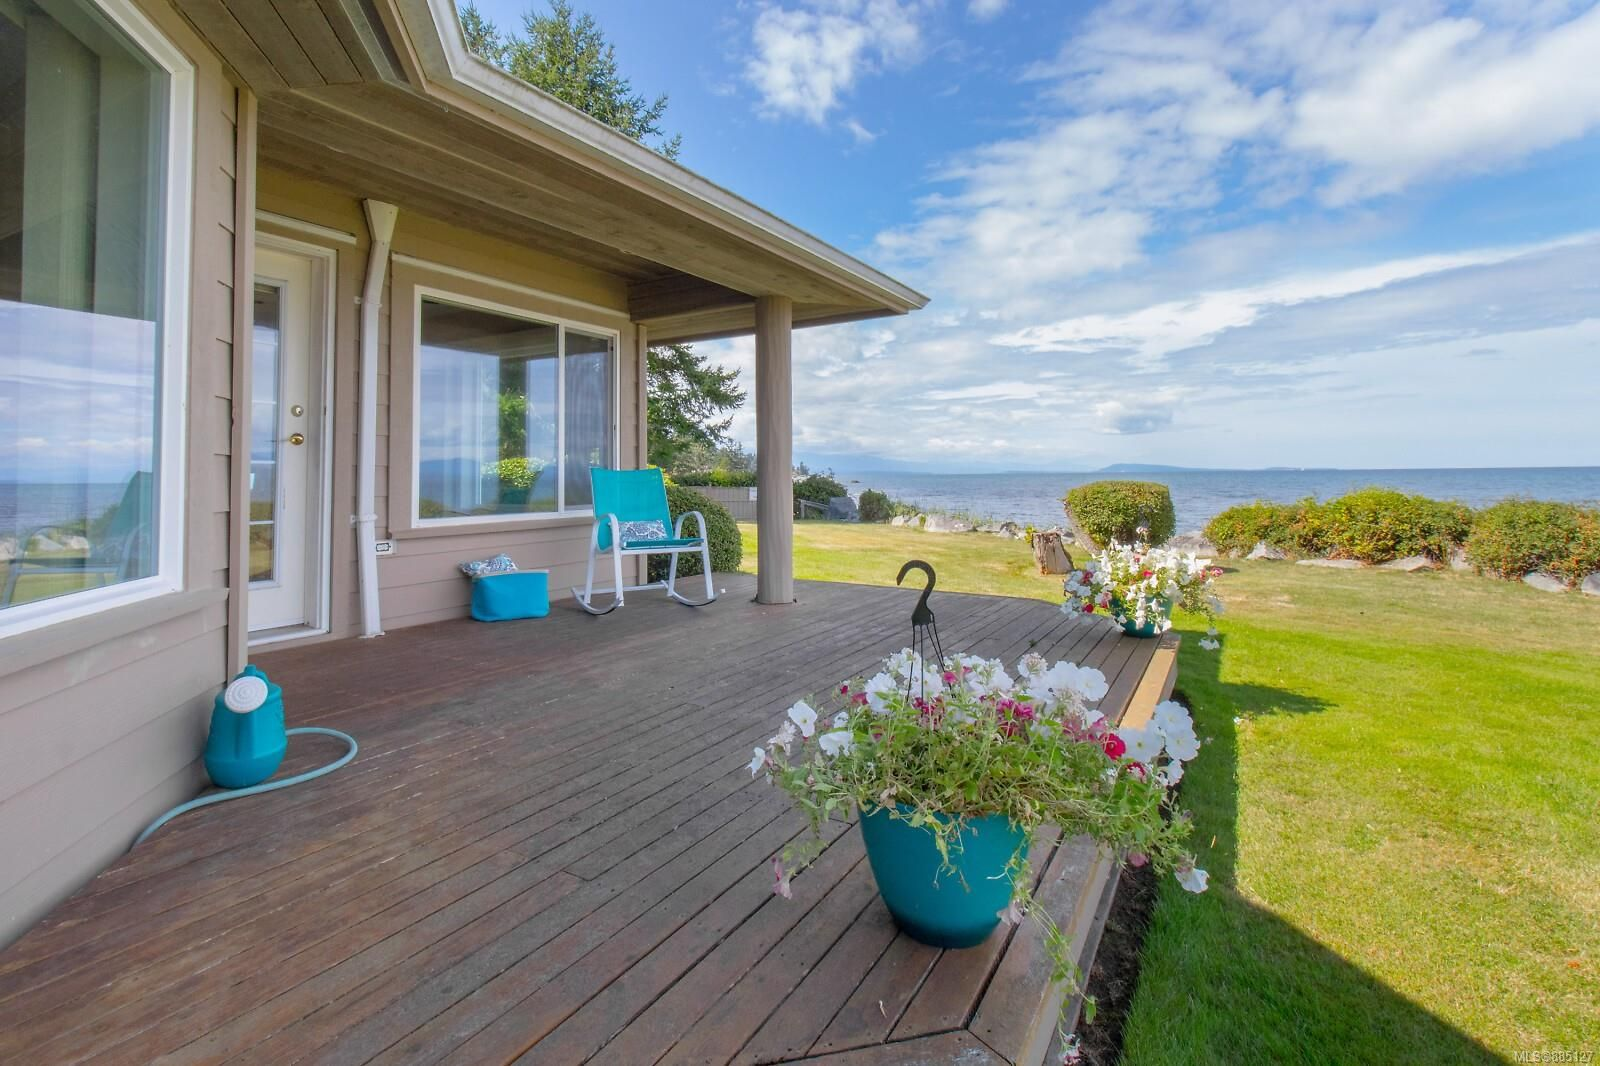 Photo 13: Photos: 26 529 Johnstone Rd in : PQ French Creek Row/Townhouse for sale (Parksville/Qualicum)  : MLS®# 885127